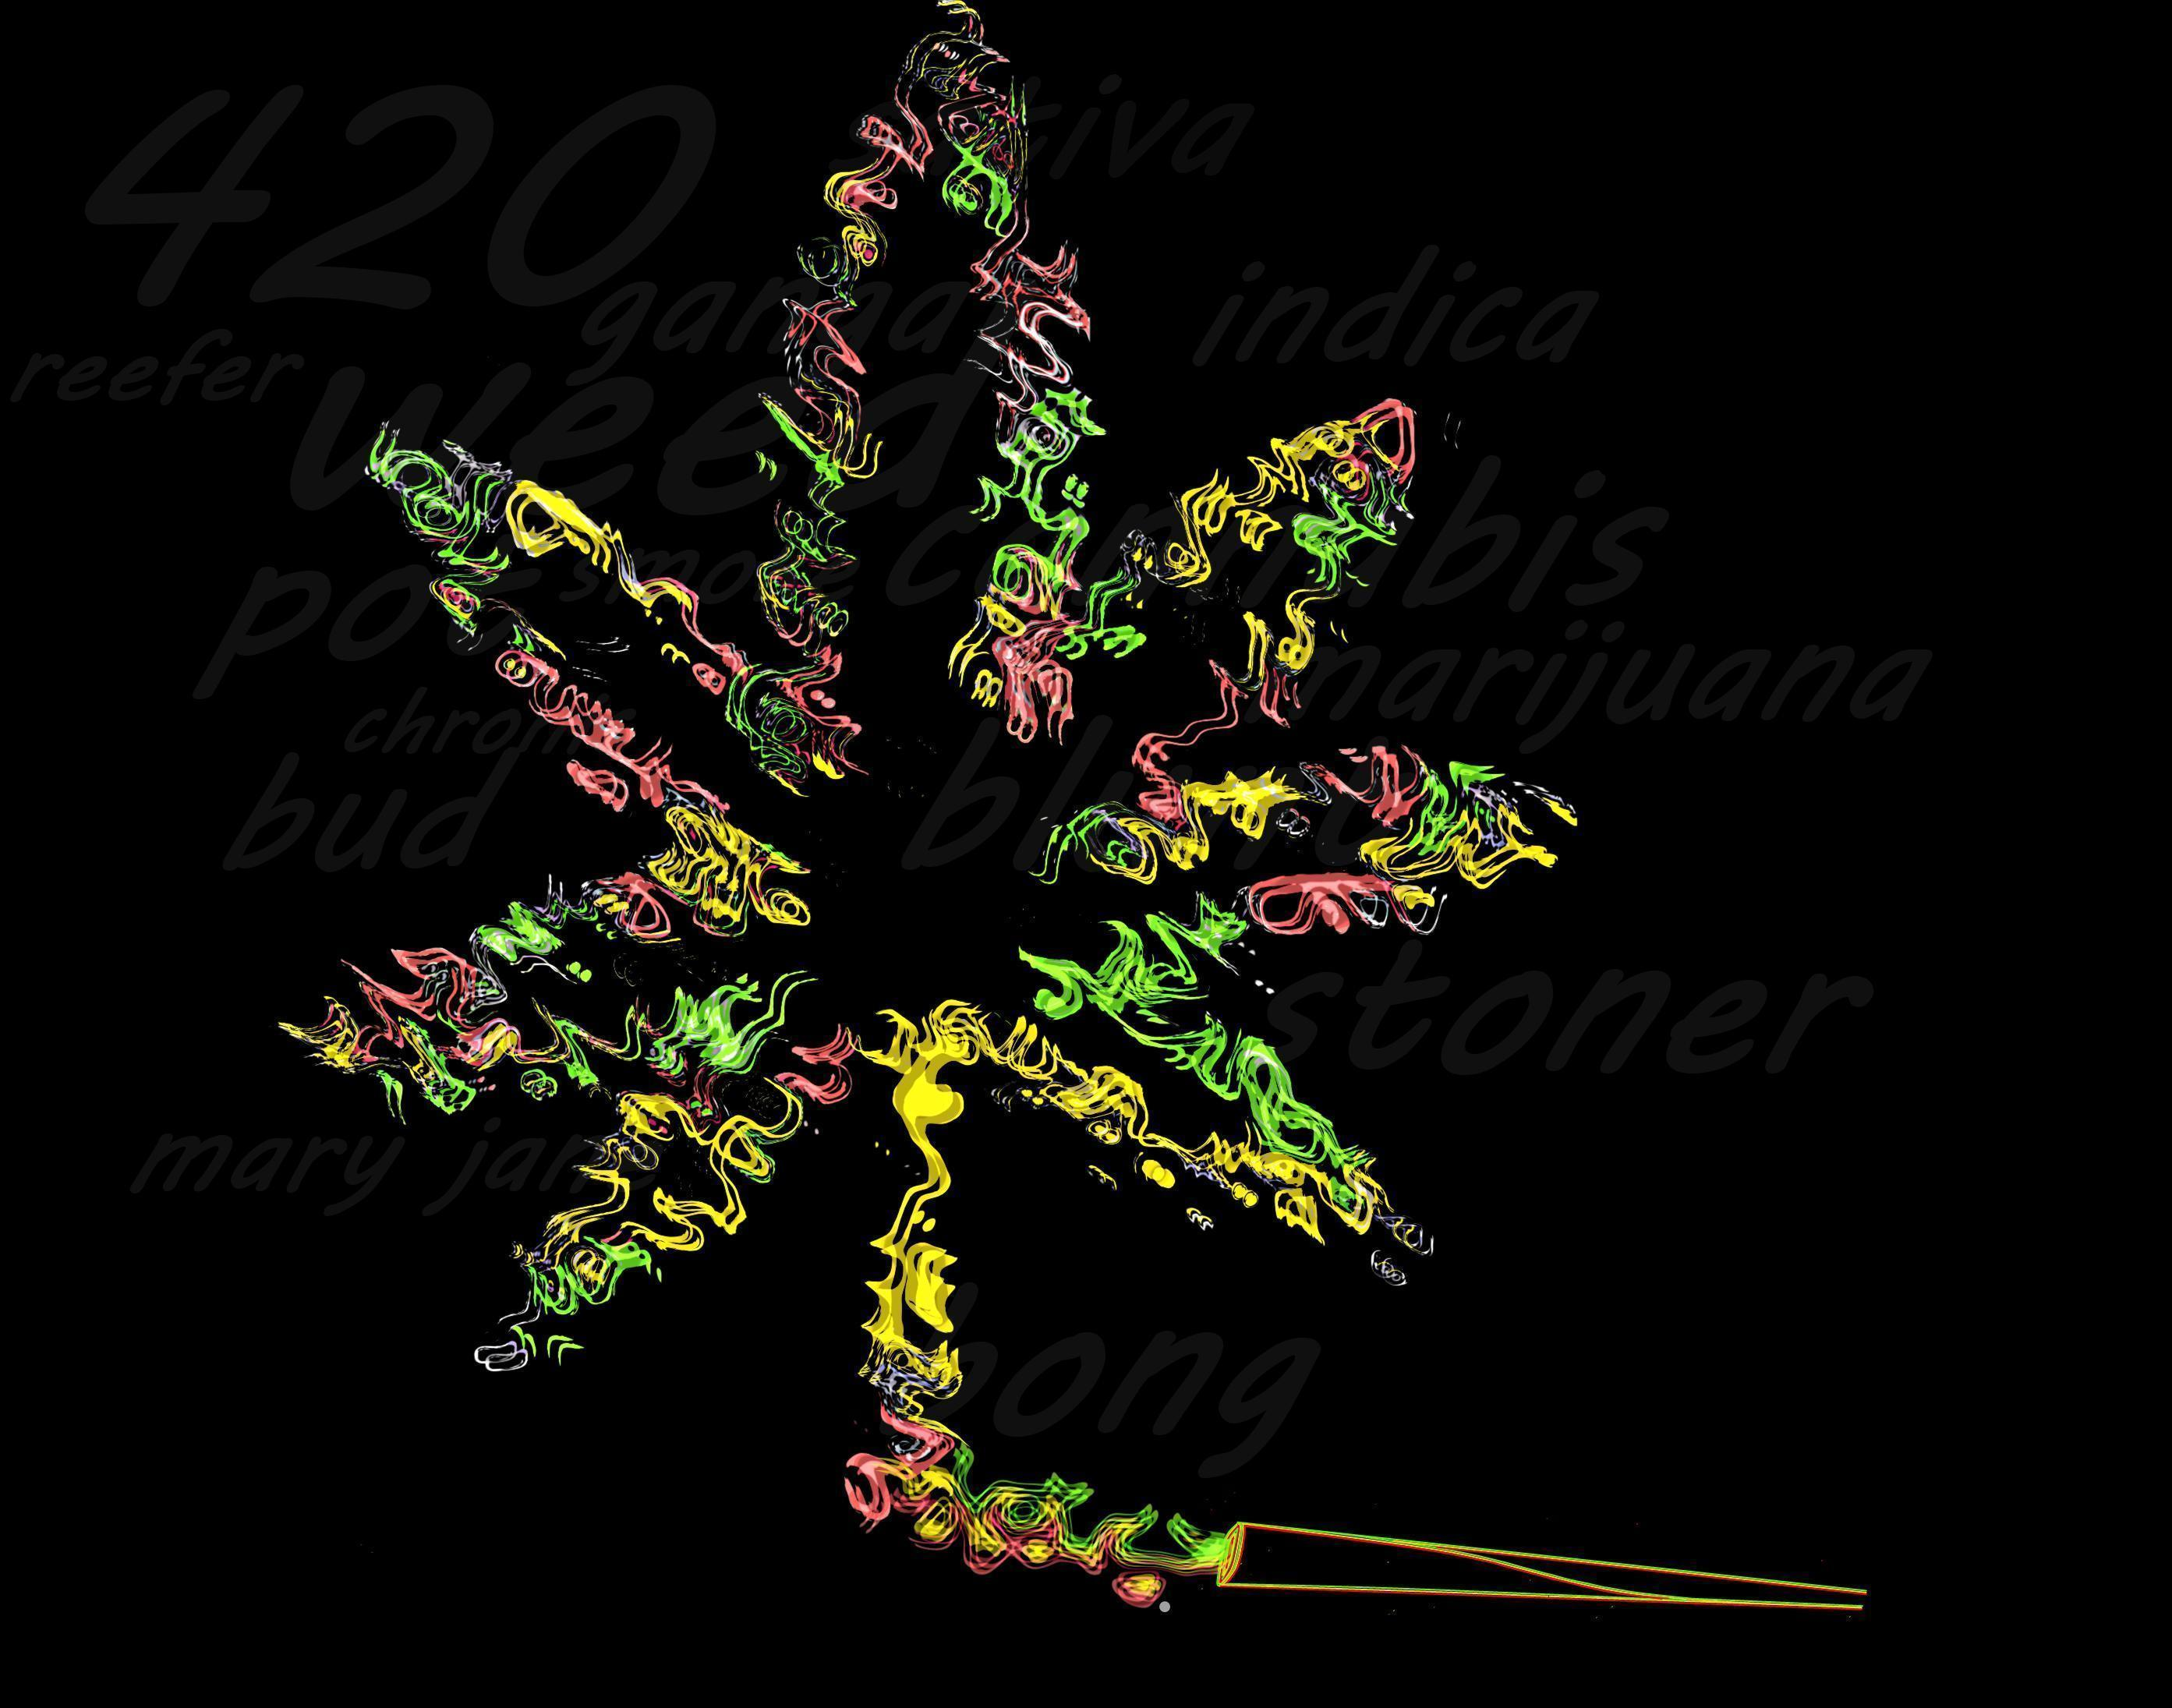 rasta smoke wallpaper moving - photo #23